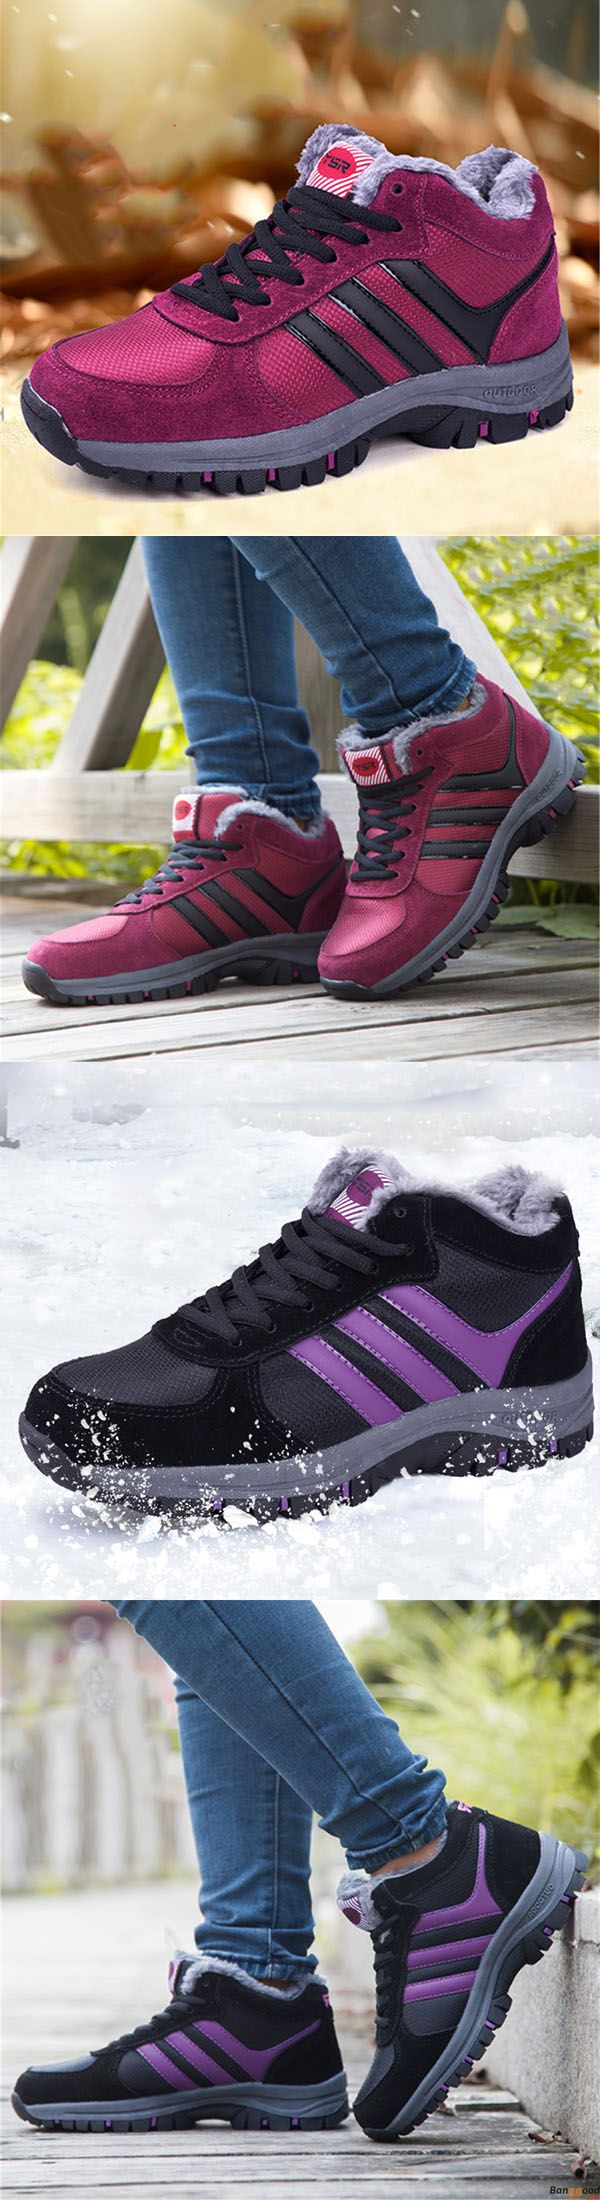 Winter Sport Stripe Fur Lining Lace Up Boots For Women. Warm and comfy. Shop at banggood with super affordable price.